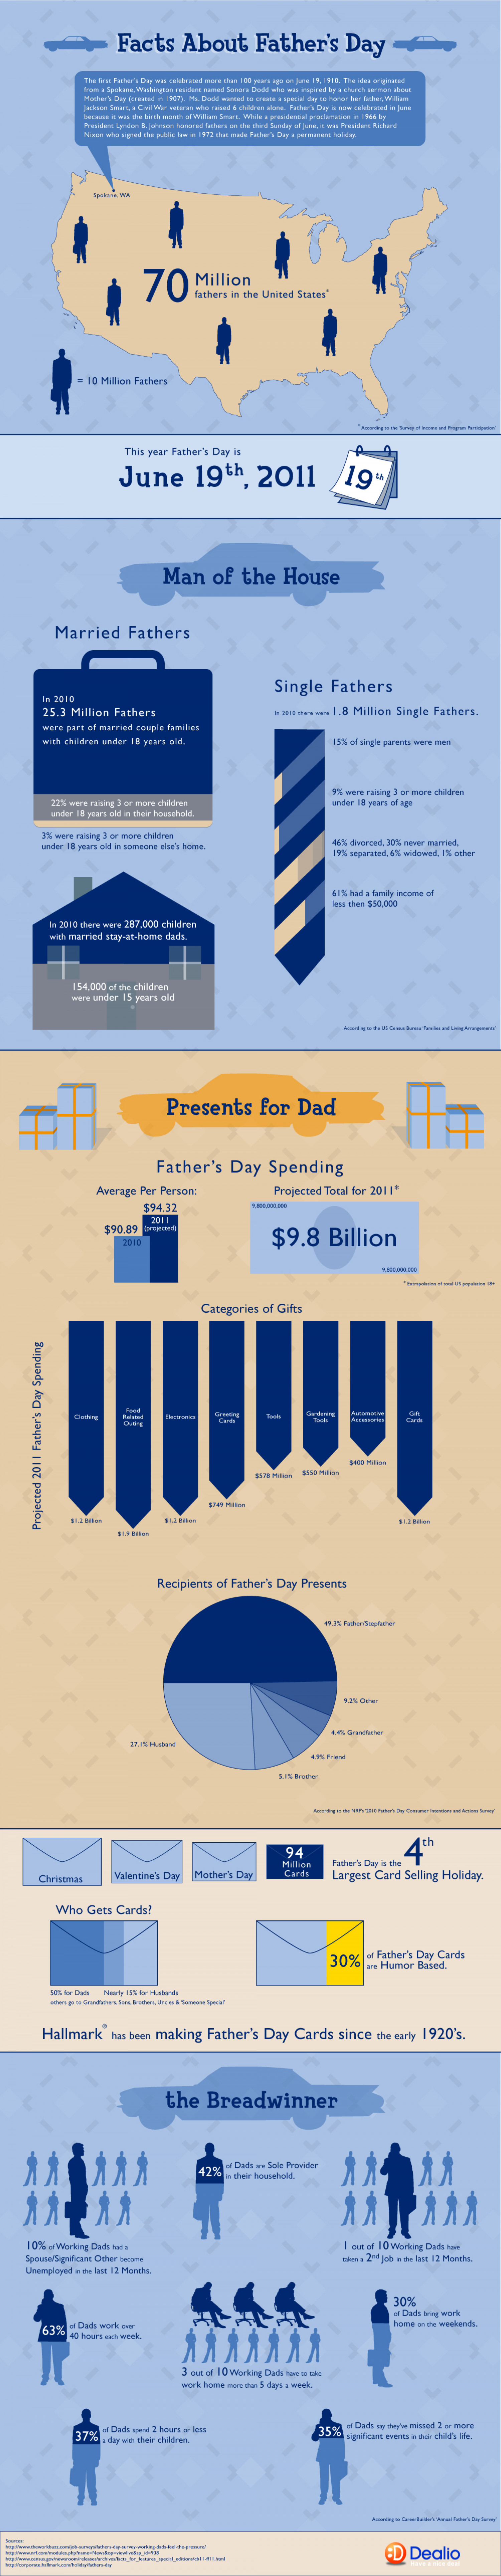 Facts About Father